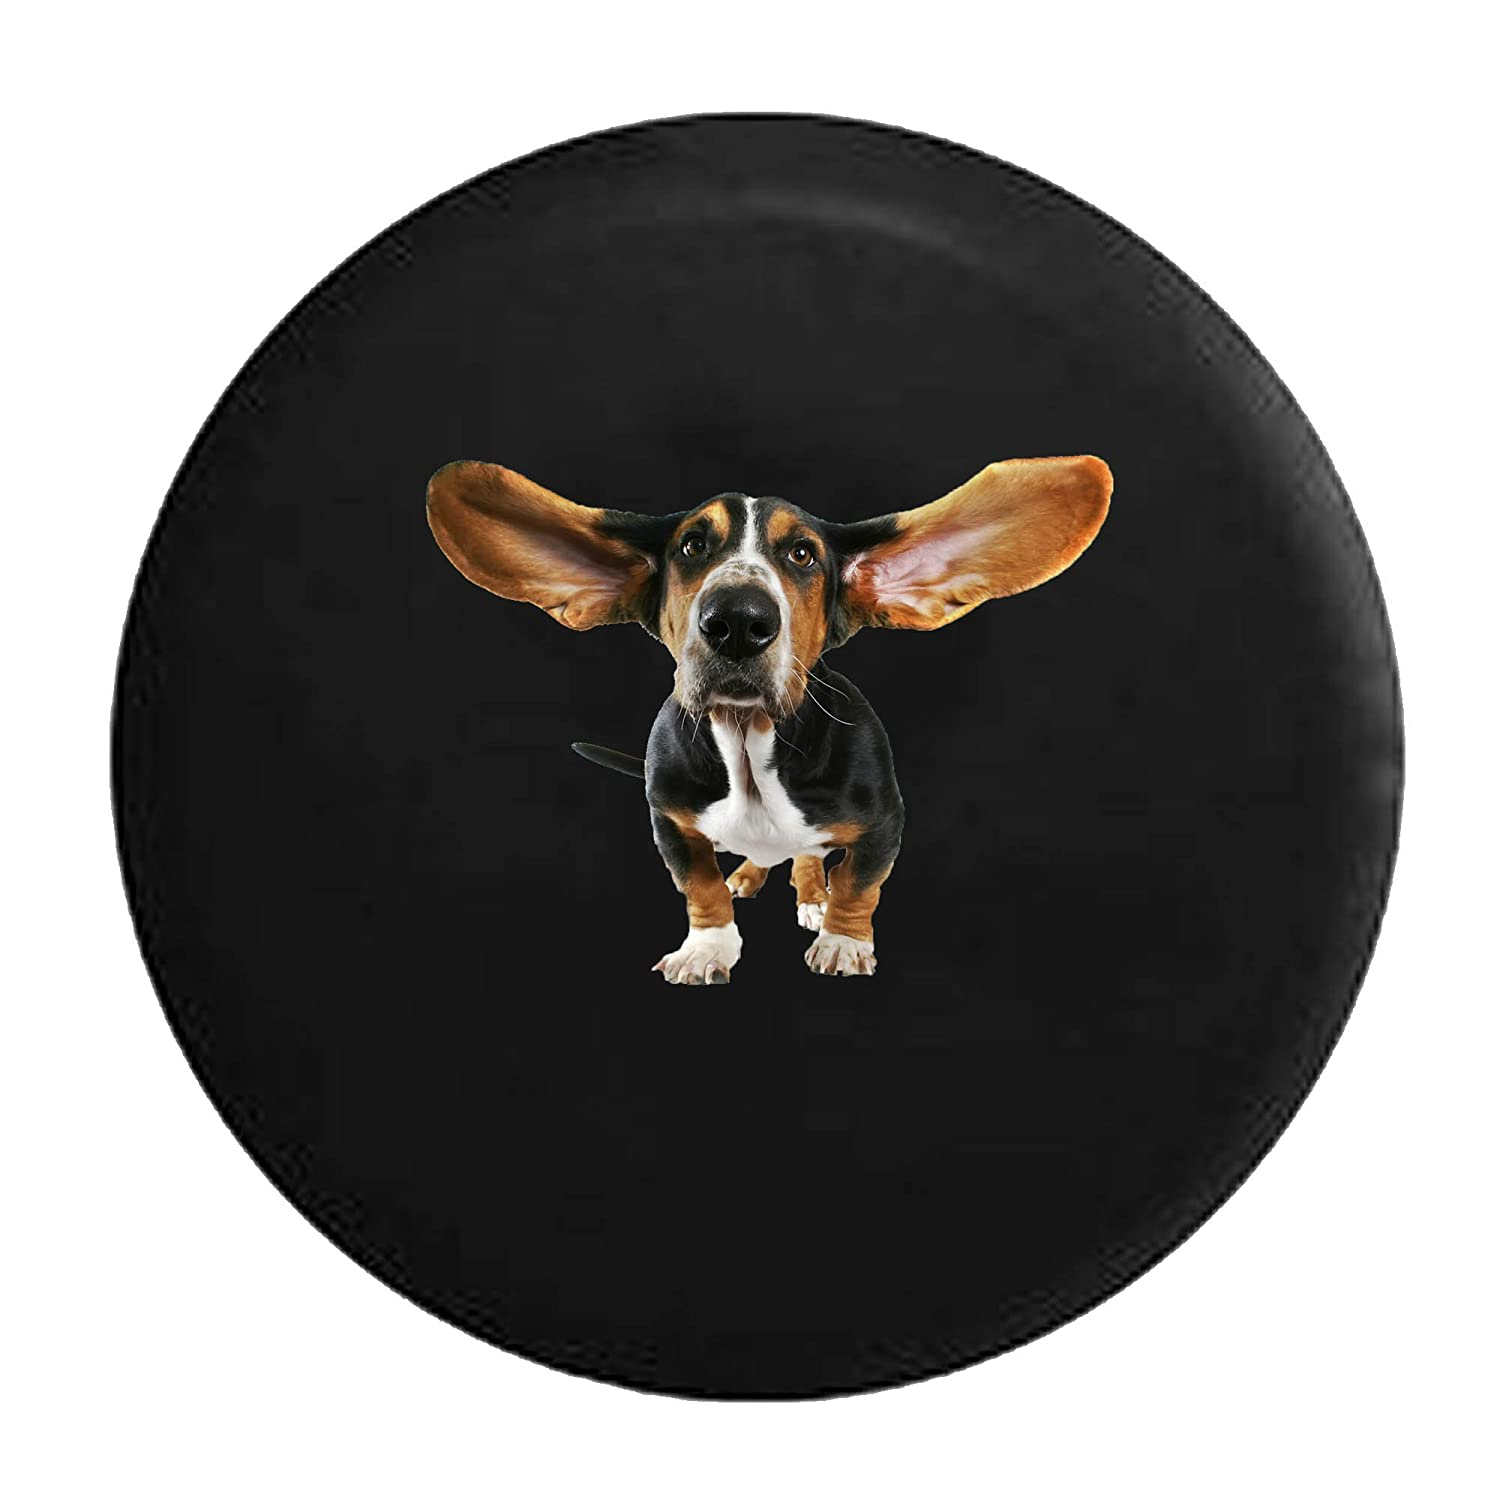 Basset Hound Dog Ears Blowing in the Wind Tire Cover Black 26-27.5 in Pike Outdoors